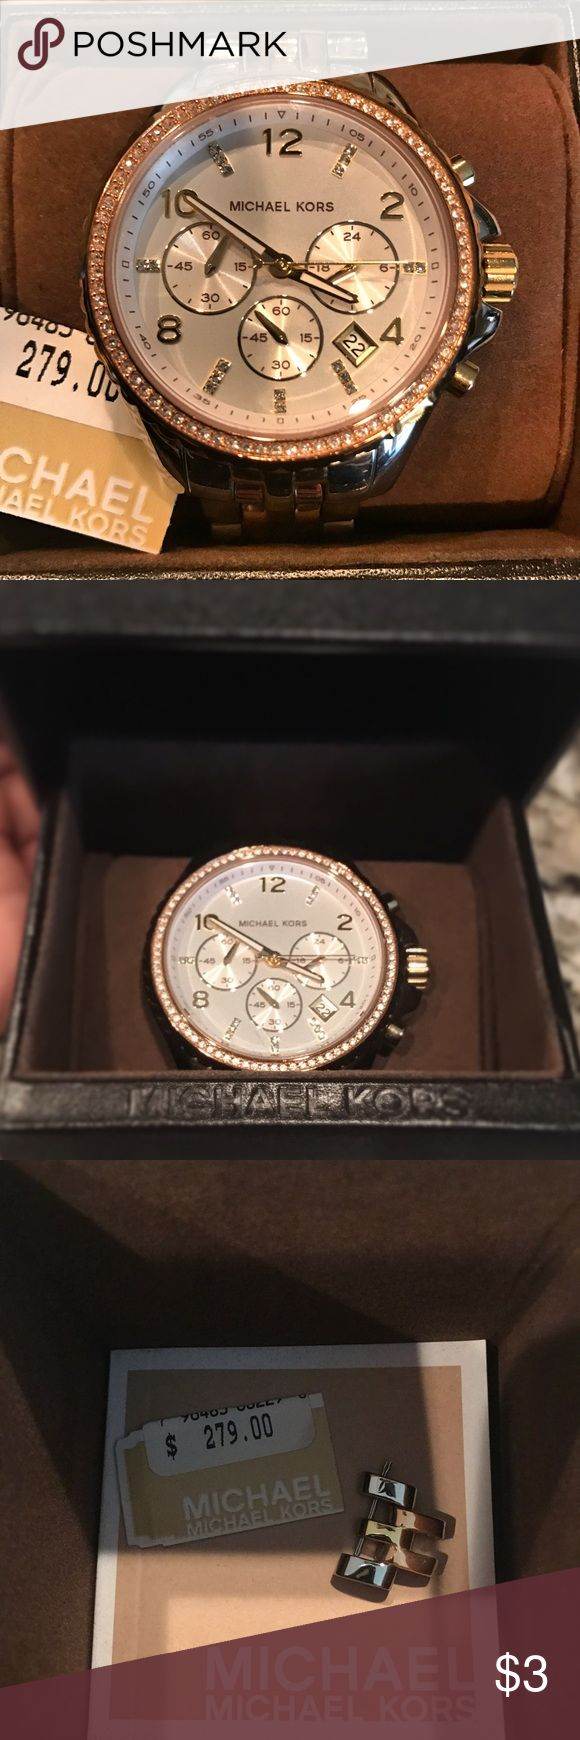 Michael Kors Watch ⌚️ Make offer  Michael Kors MK5922 Women's Tri-Tone Pilot White Dial Chronograph Watch  Wore a couple of times, then purchased Apple Watch. Comes with: - link - users manual  - protective case  Retail $276. Accepting offers. Michael Kors Accessories Watches